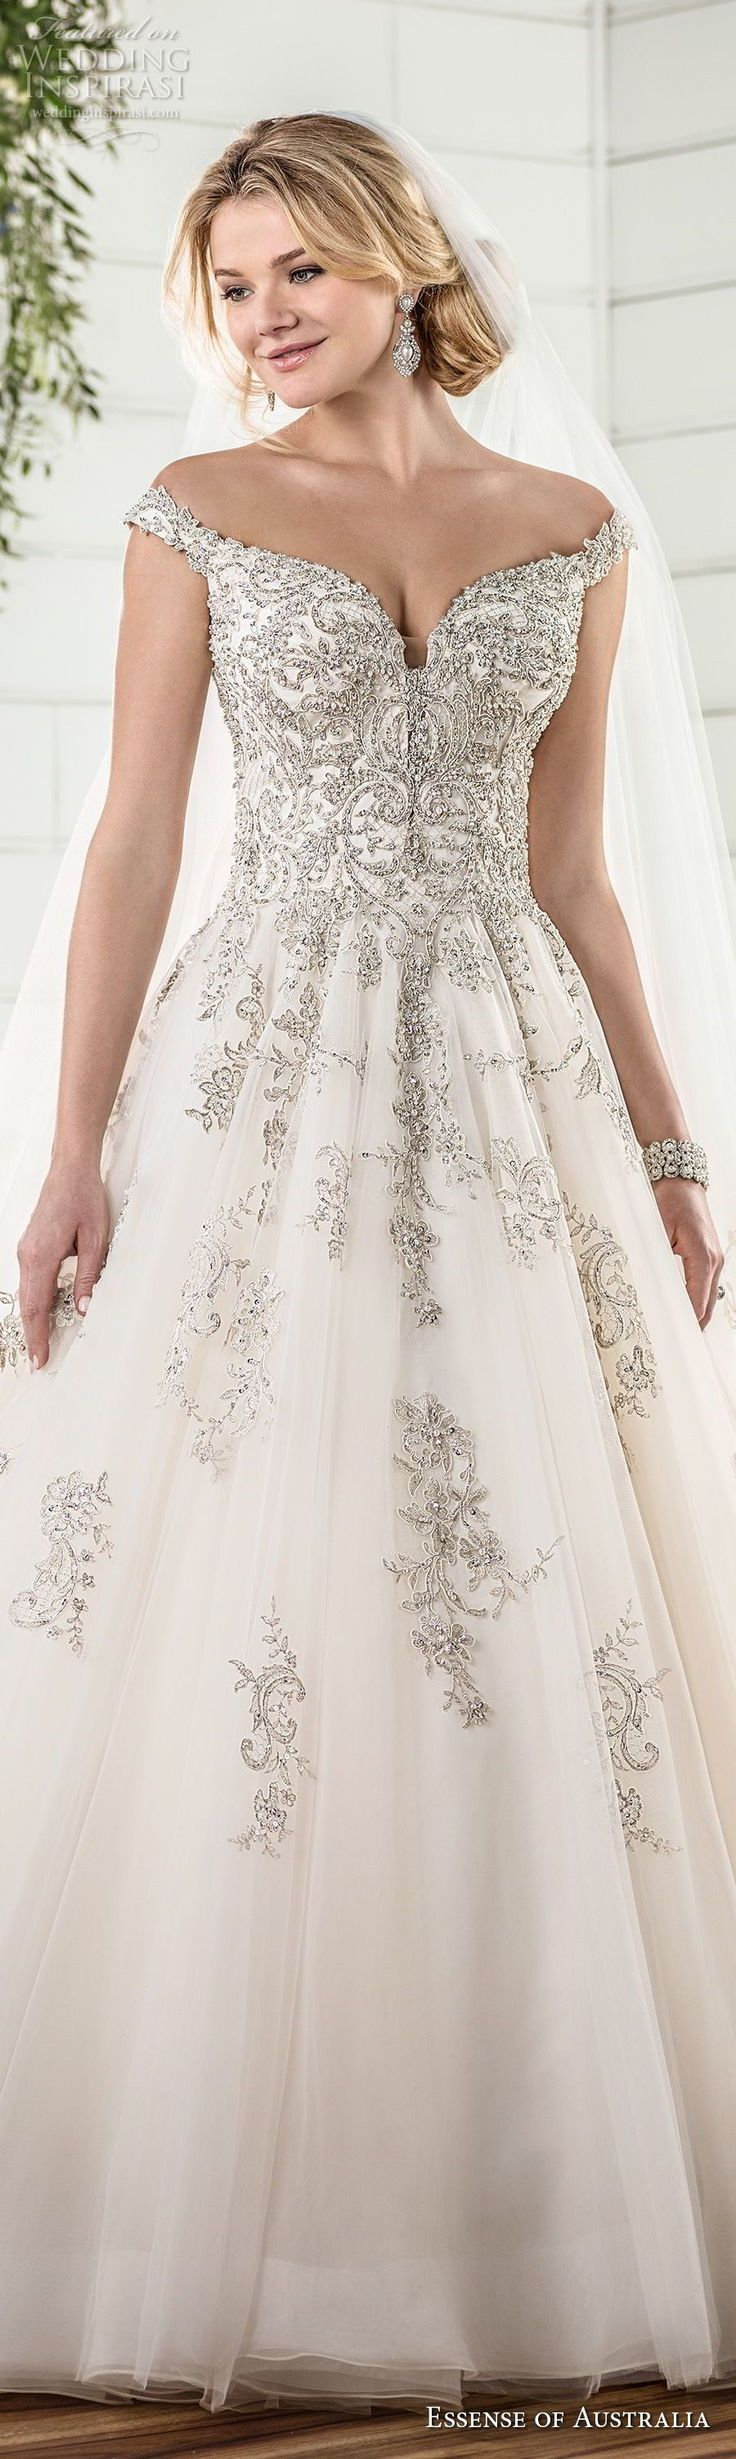 Best 41 Essense of Australia gowns at Lily Saratoga ideas on ...